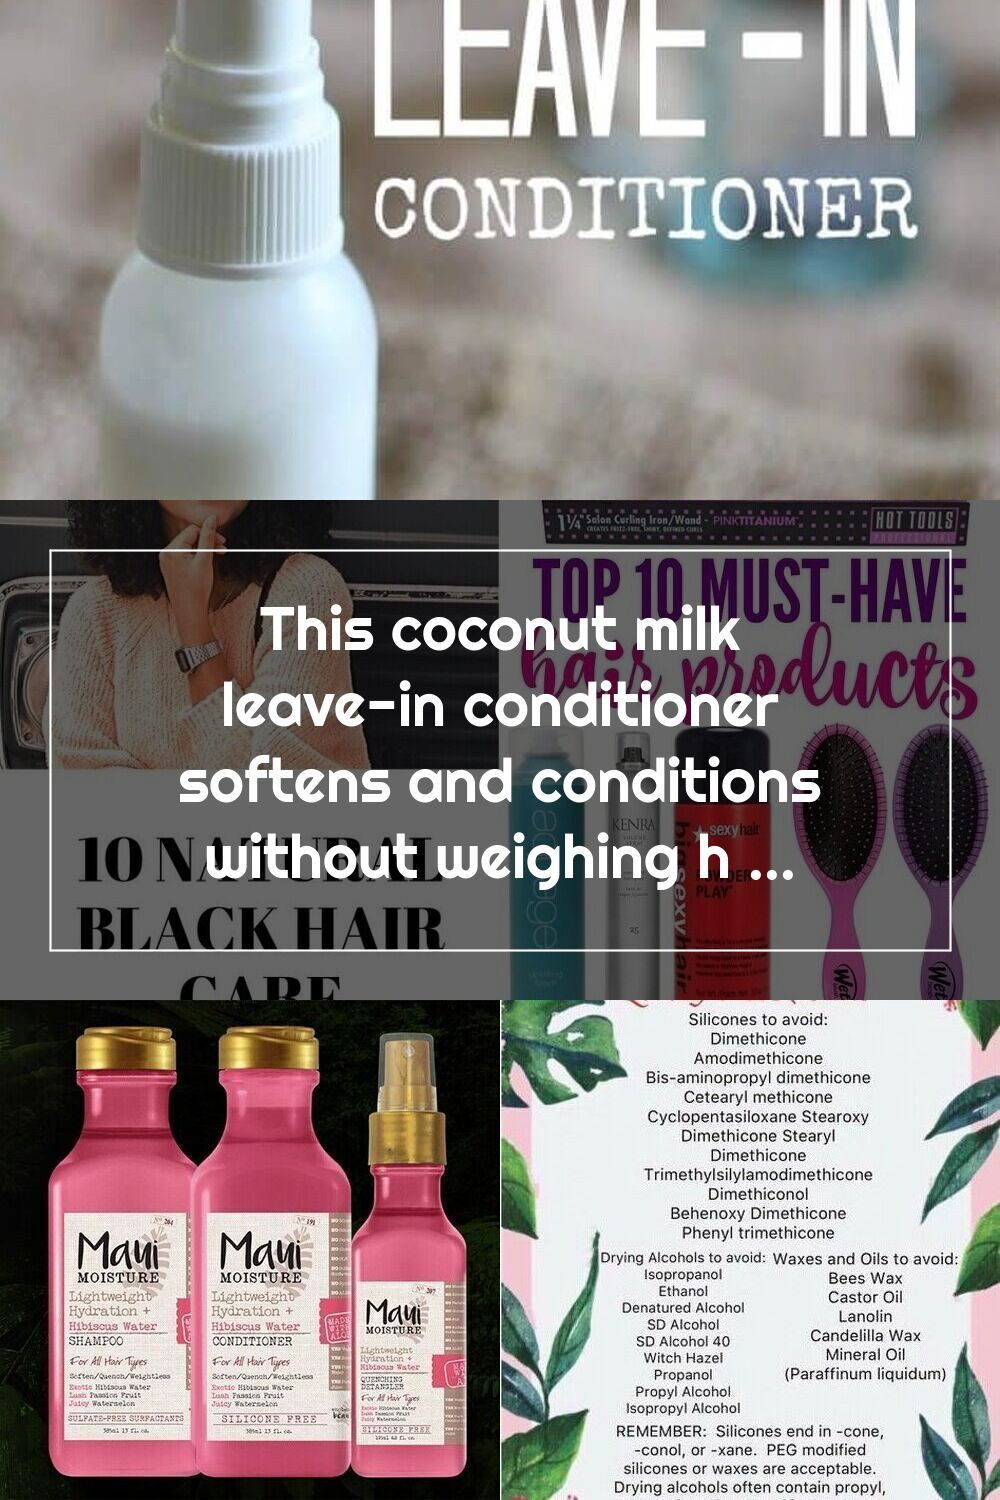 This coconut milk leavein conditioner softens and